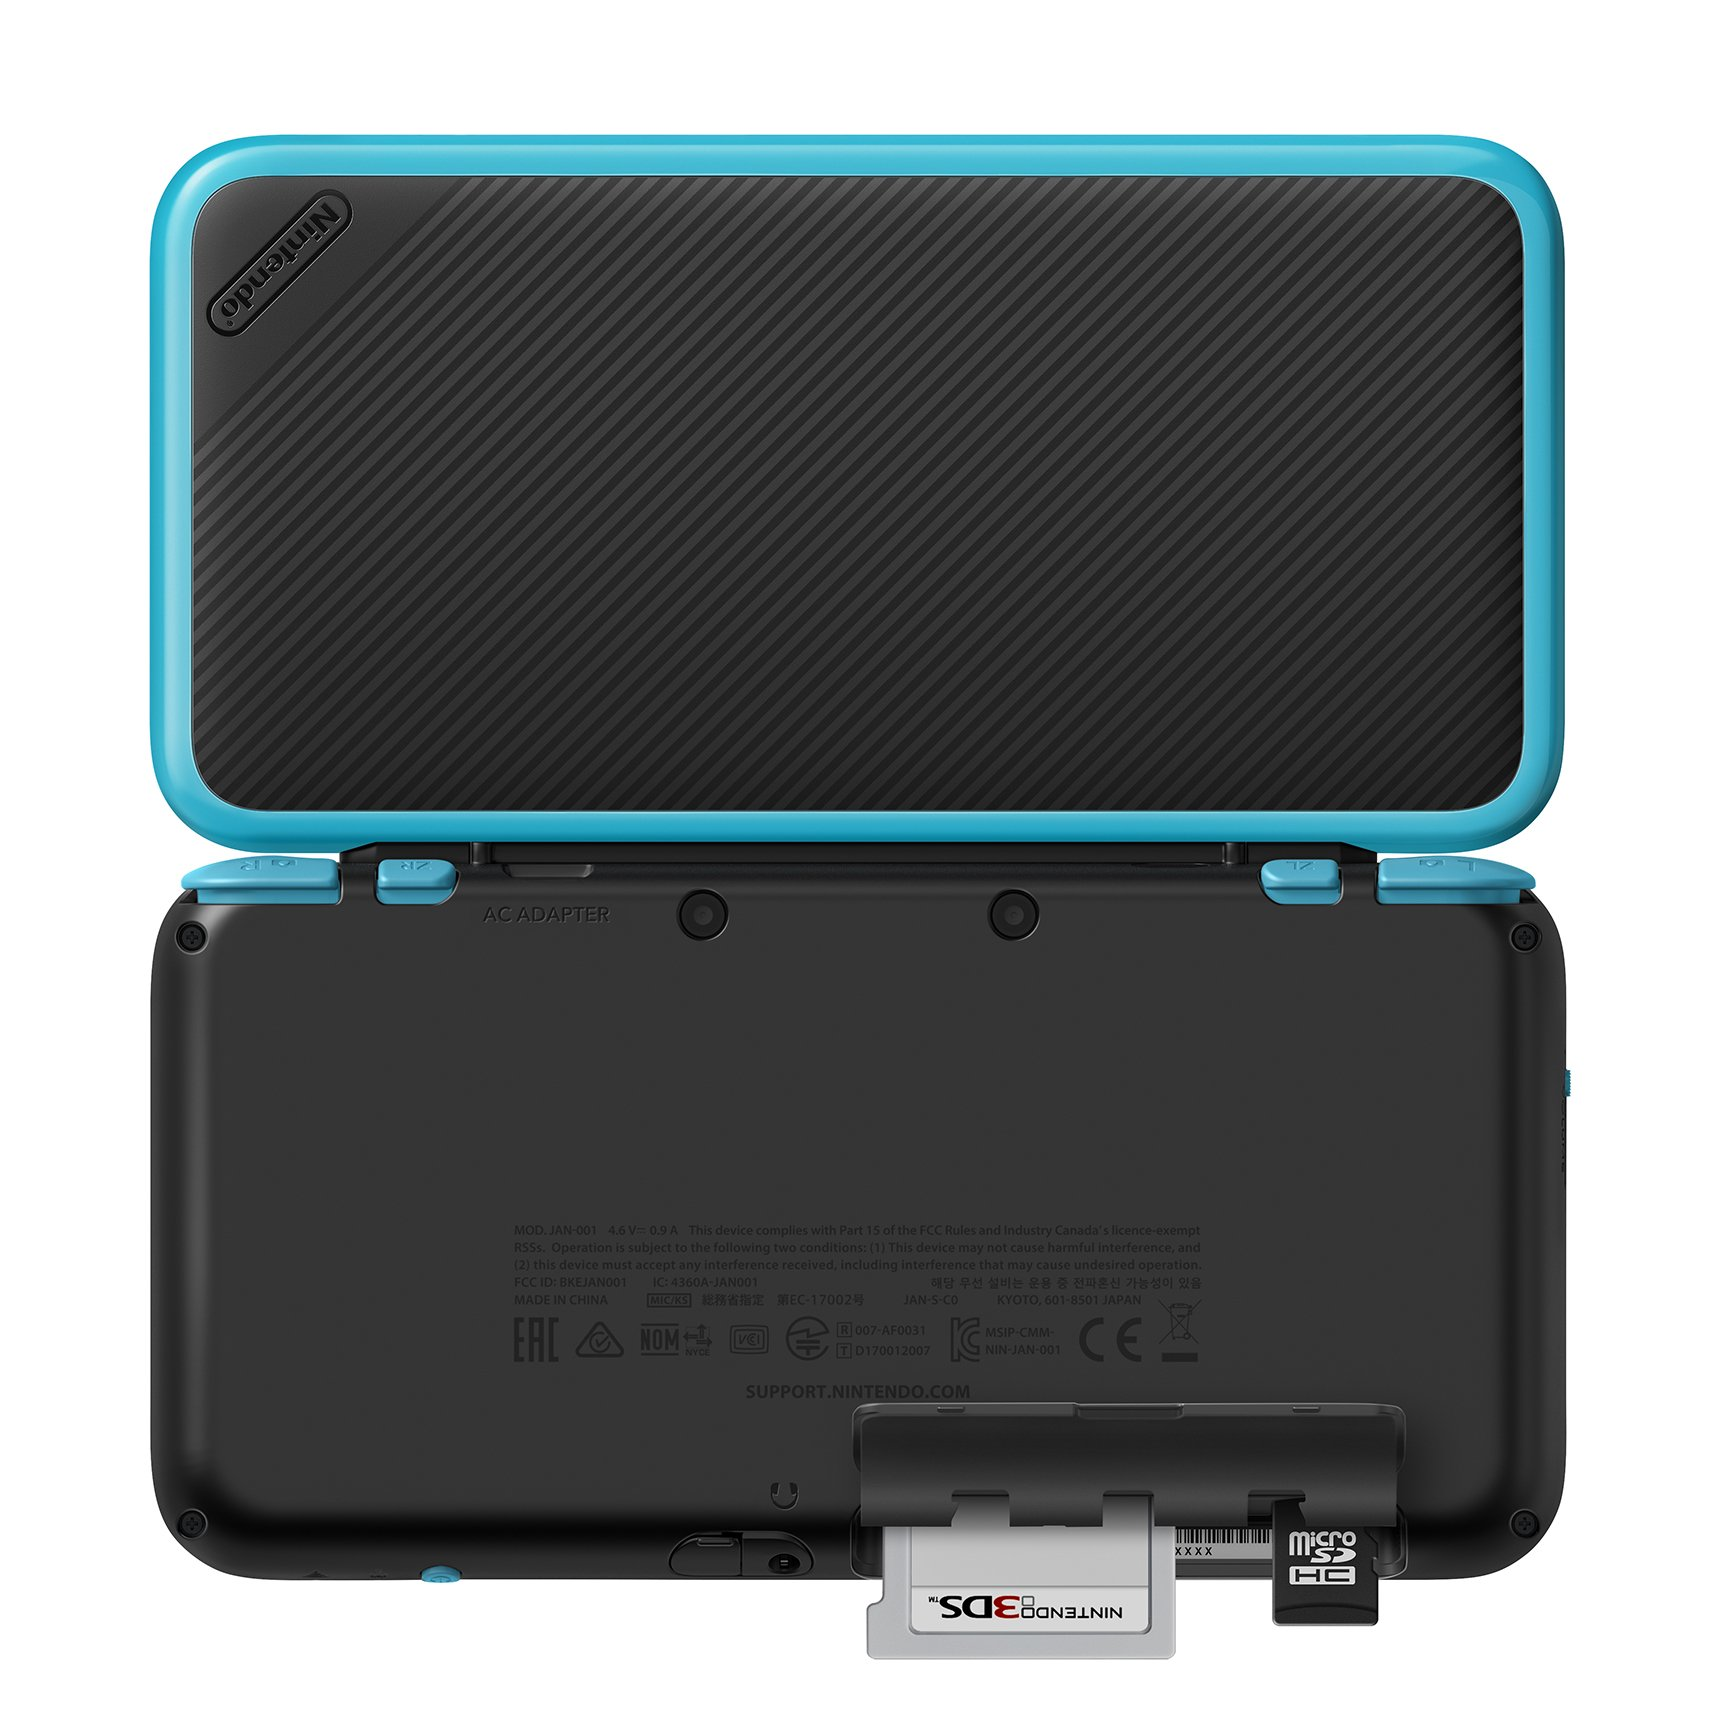 New Nintendo 2DS XL - Black + Turquoise With Mario Kart 7 Pre-installed - Nintendo 2DS by Nintendo (Image #4)